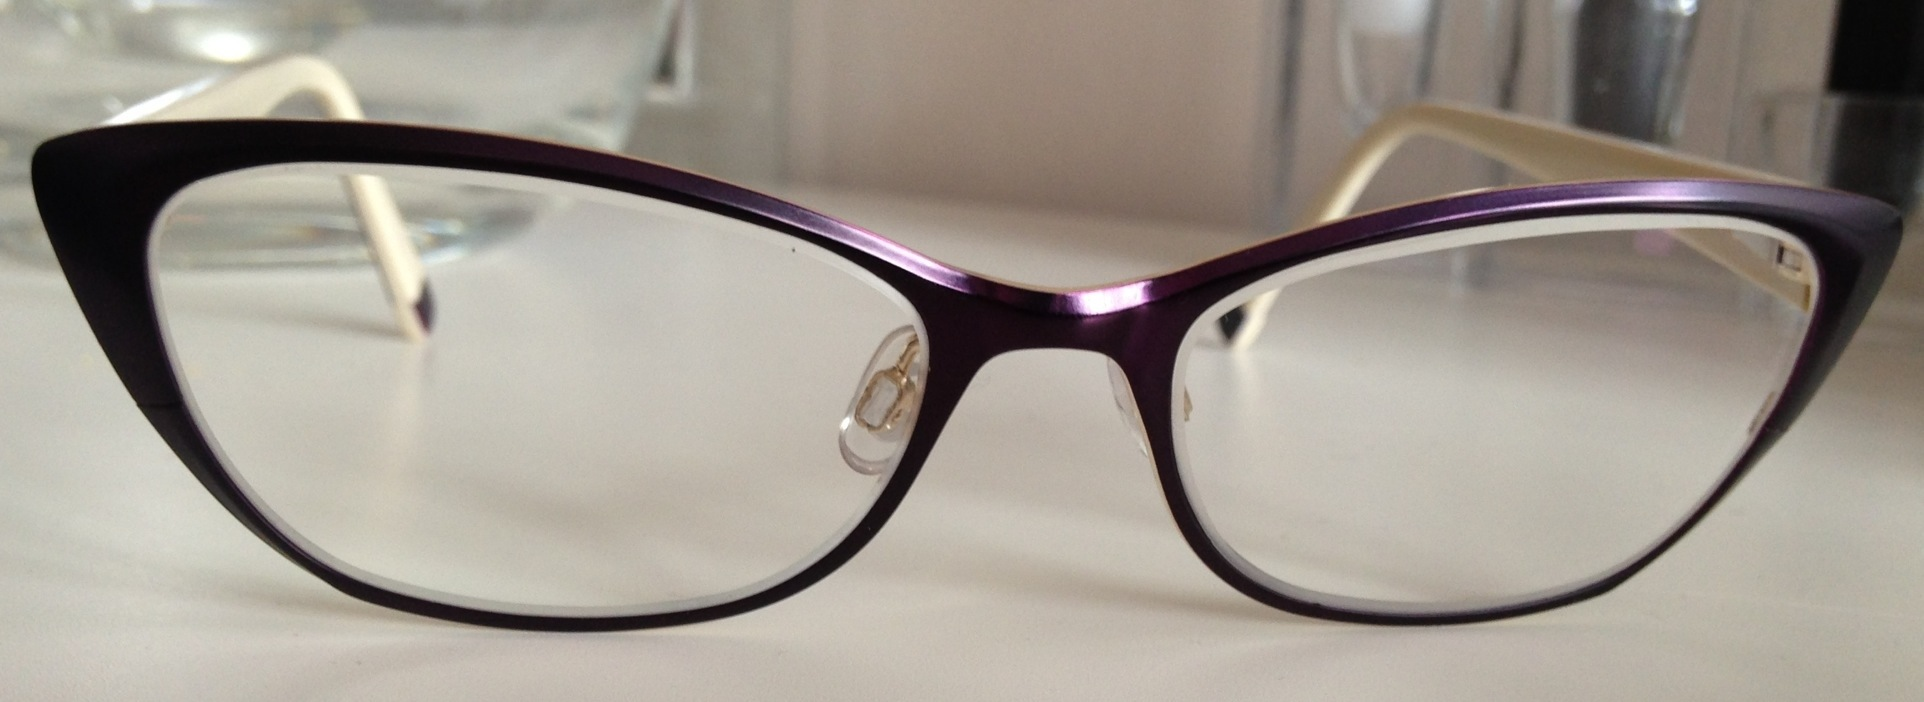 3fc21d182402 Product review: Osiris glasses from Specsavers | So Many Lovely Things